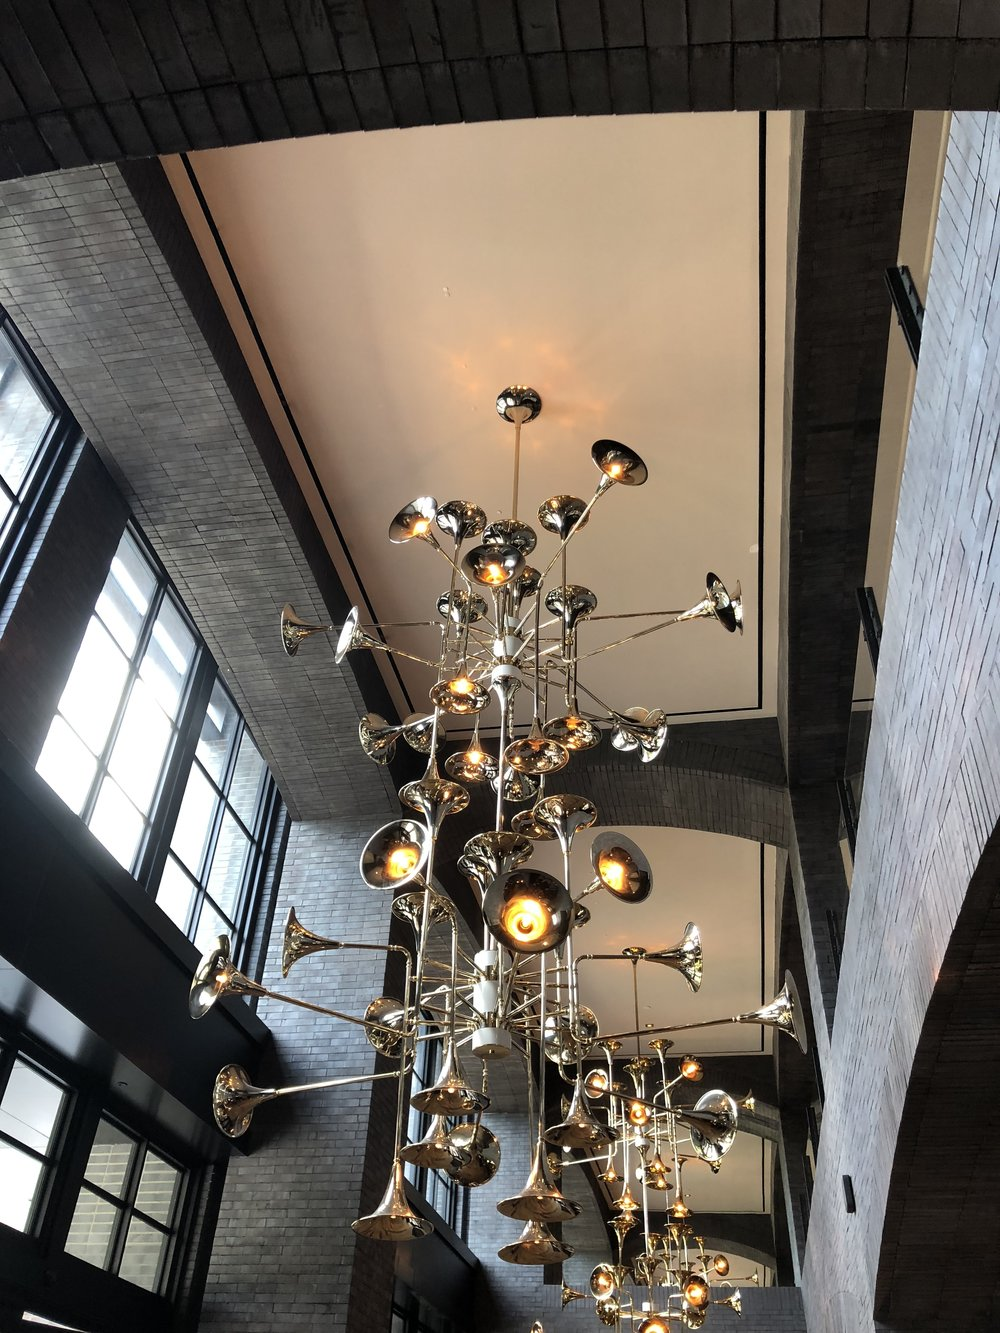 """Everything is bigger in Texas"" and this chandelier fits this saying perfectly. Lighting is my favorite design element and this is a show-stopping example of how diverse and unique a fixture can be"